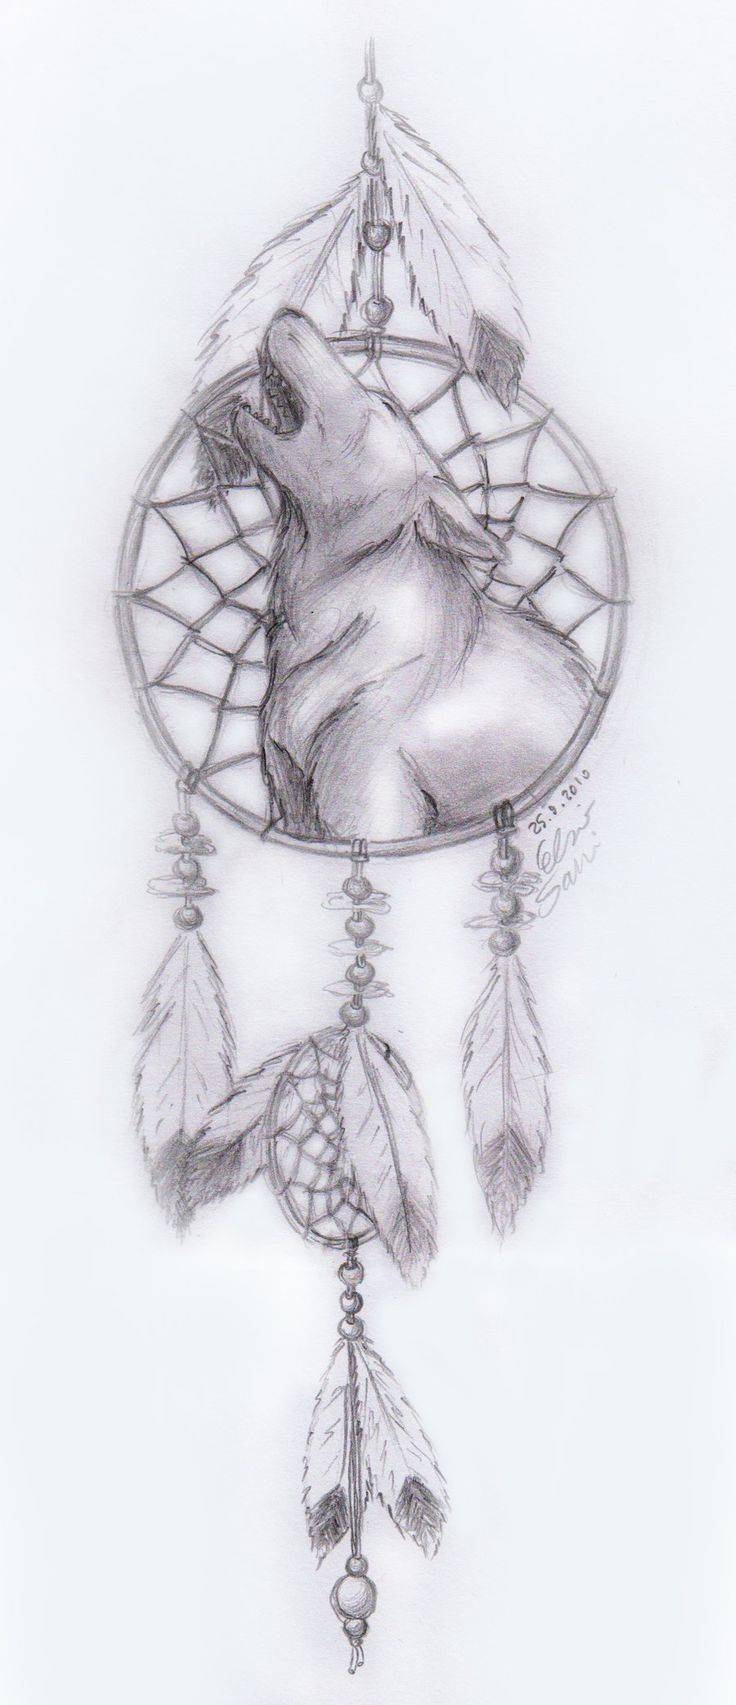 Howling wolf dreamcatcher tattoos